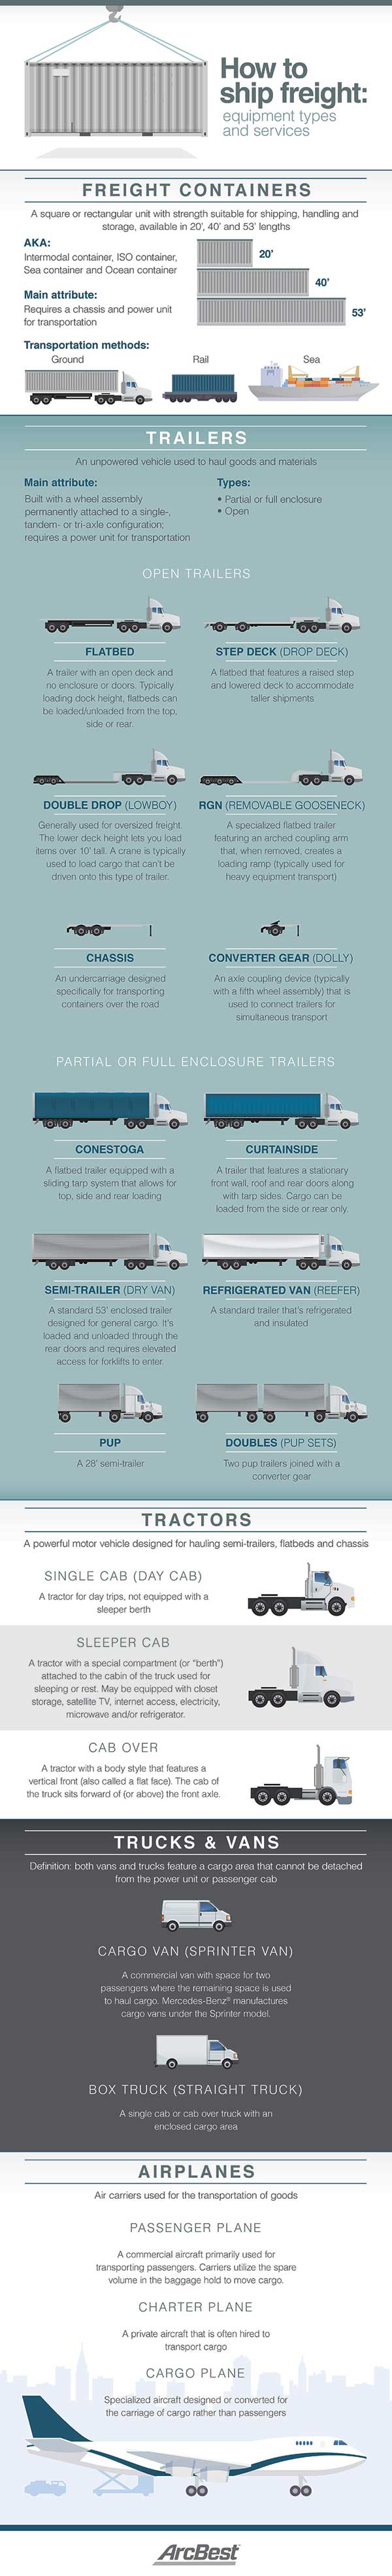 Shipping_Equipment_Types_and_Sizes_Description_600.jpg